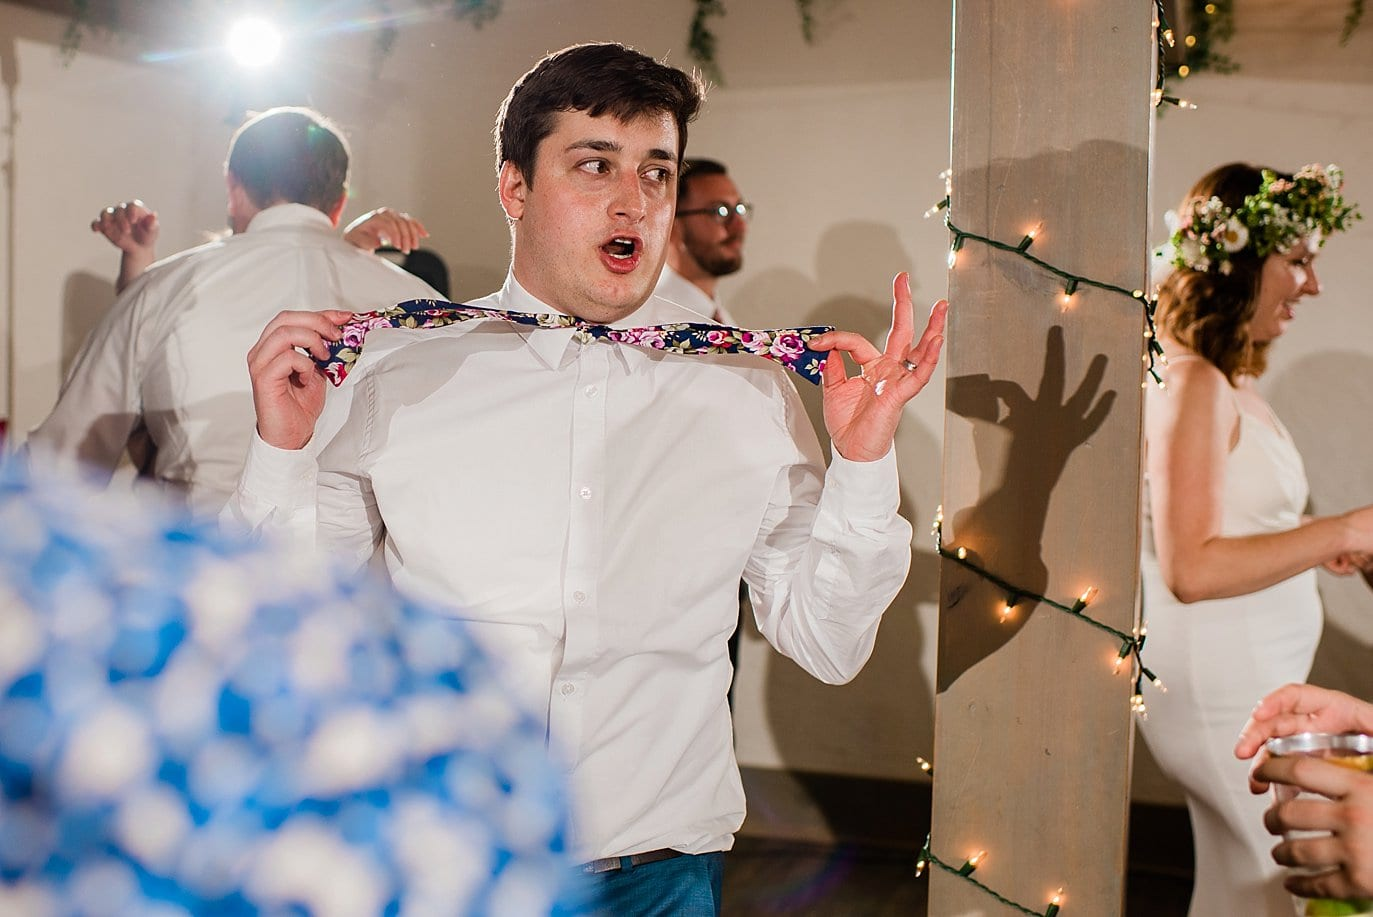 groom dancing with bow tie at wedding reception photo